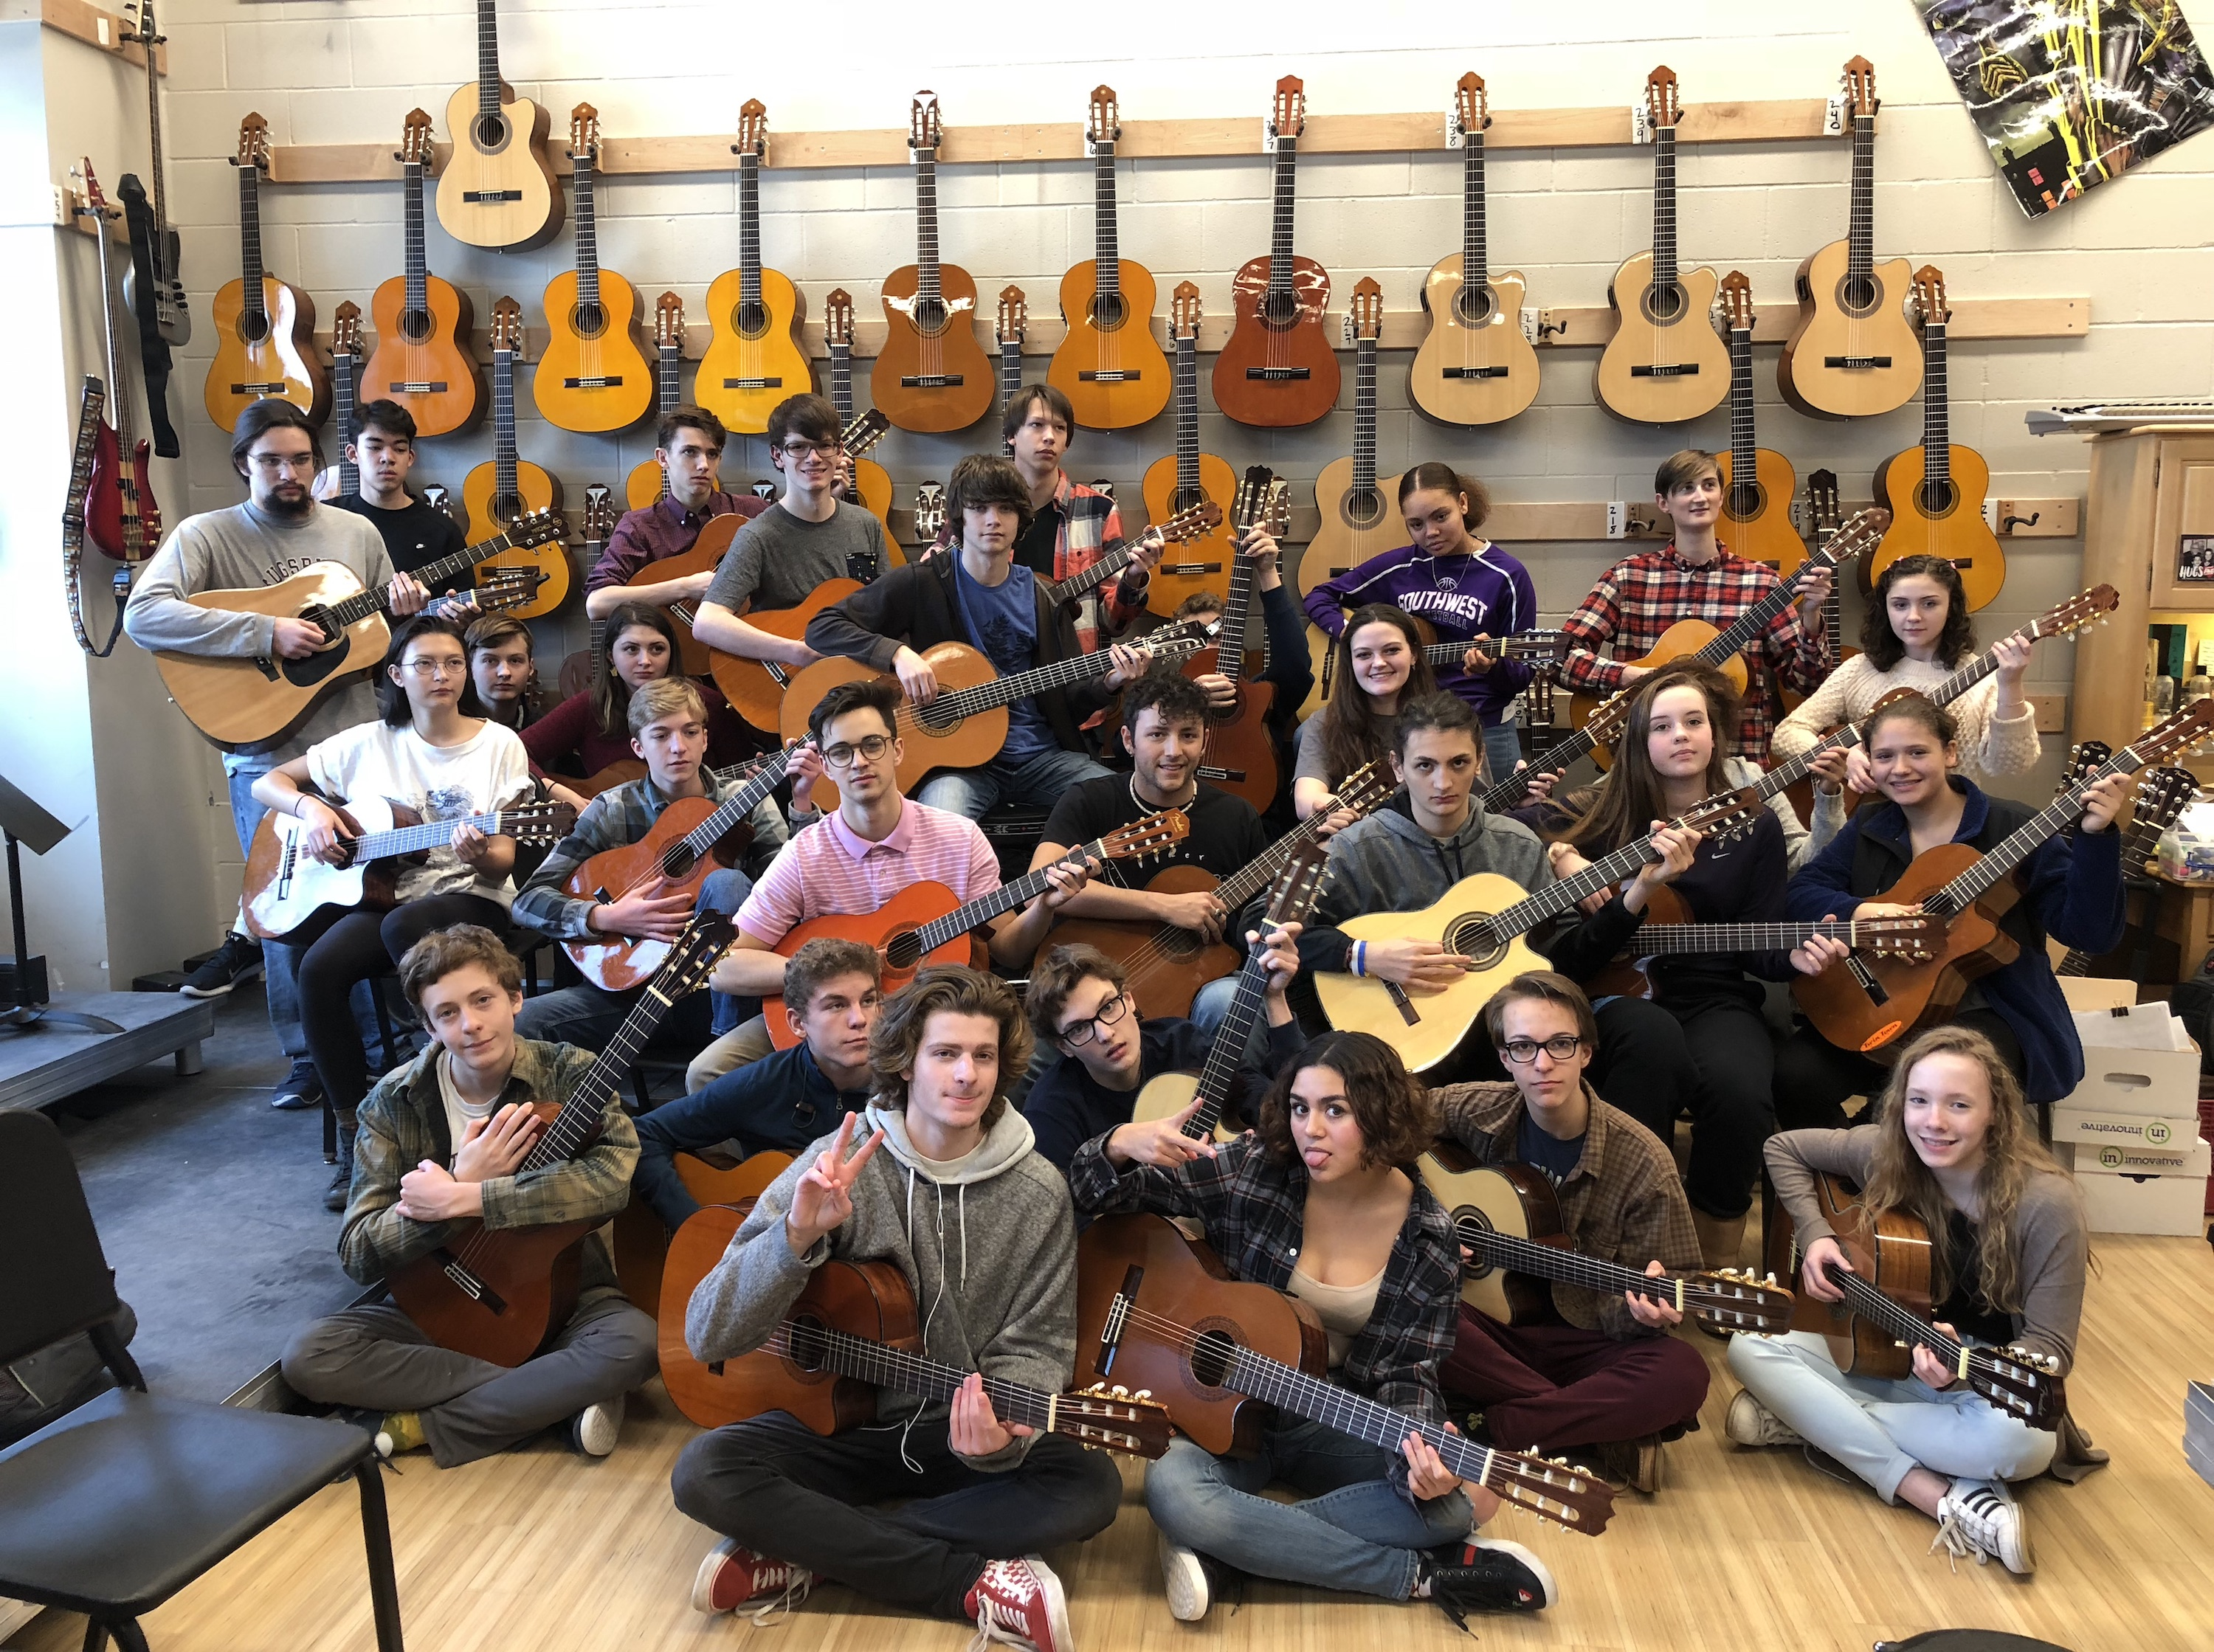 Students in Ruth LeMay's guitar orchestra at Southwest High School pose for a group photo. Photo courtesy Ruth LeMay